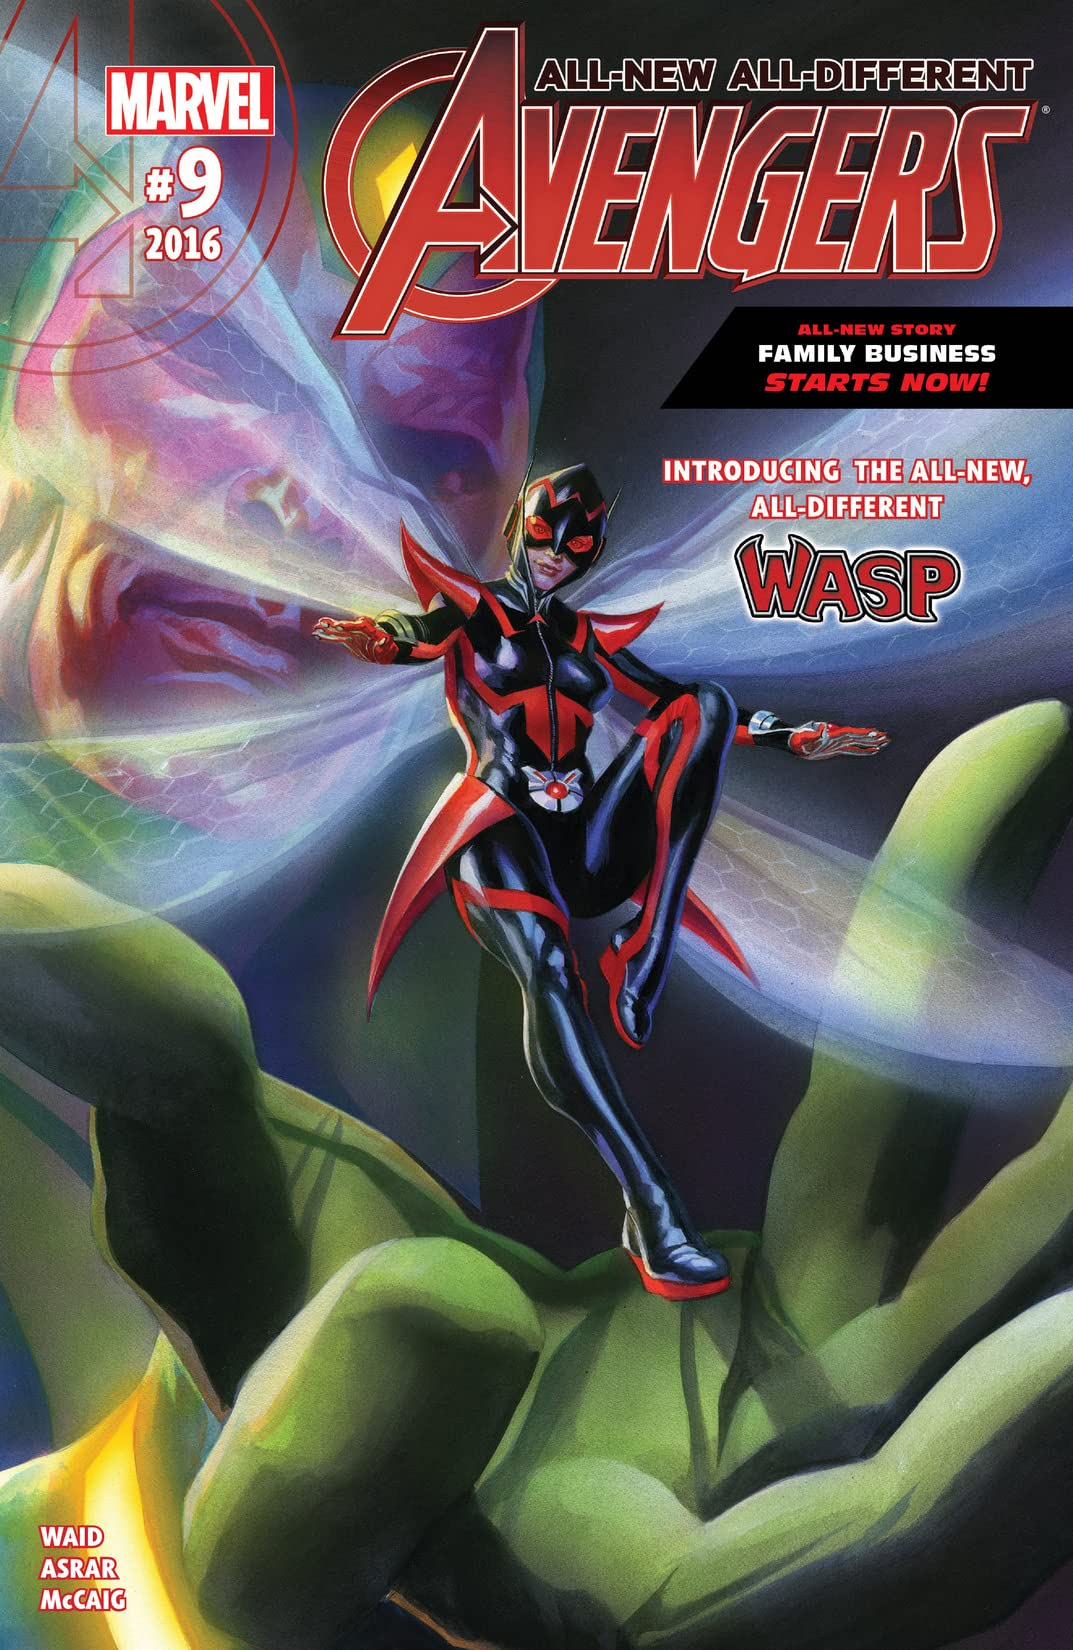 All-New, All-Different Avengers (2015-2016) #9